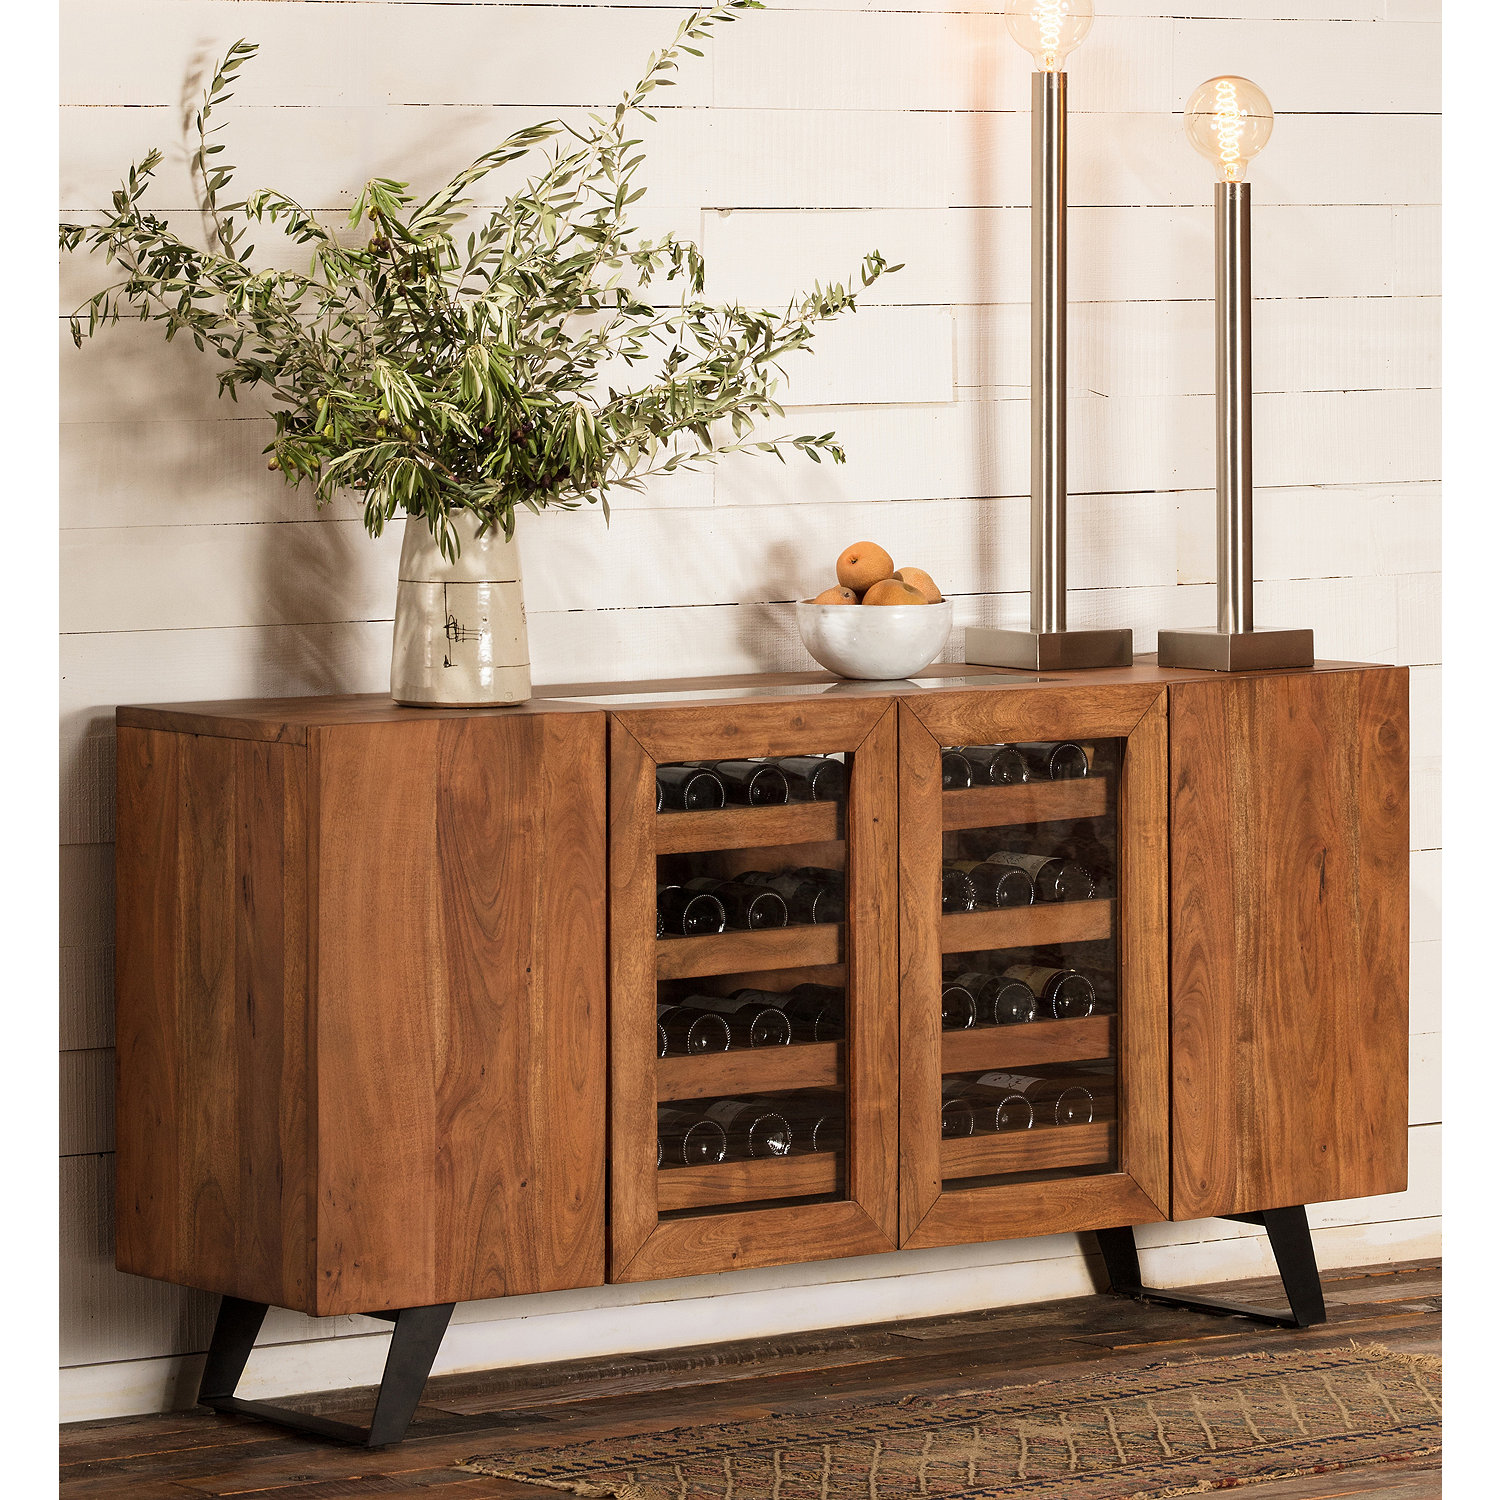 ... Wine Storage Credenza. SALE. Preparing Zoom & Cassis Wine Storage Credenza - Wine Enthusiast